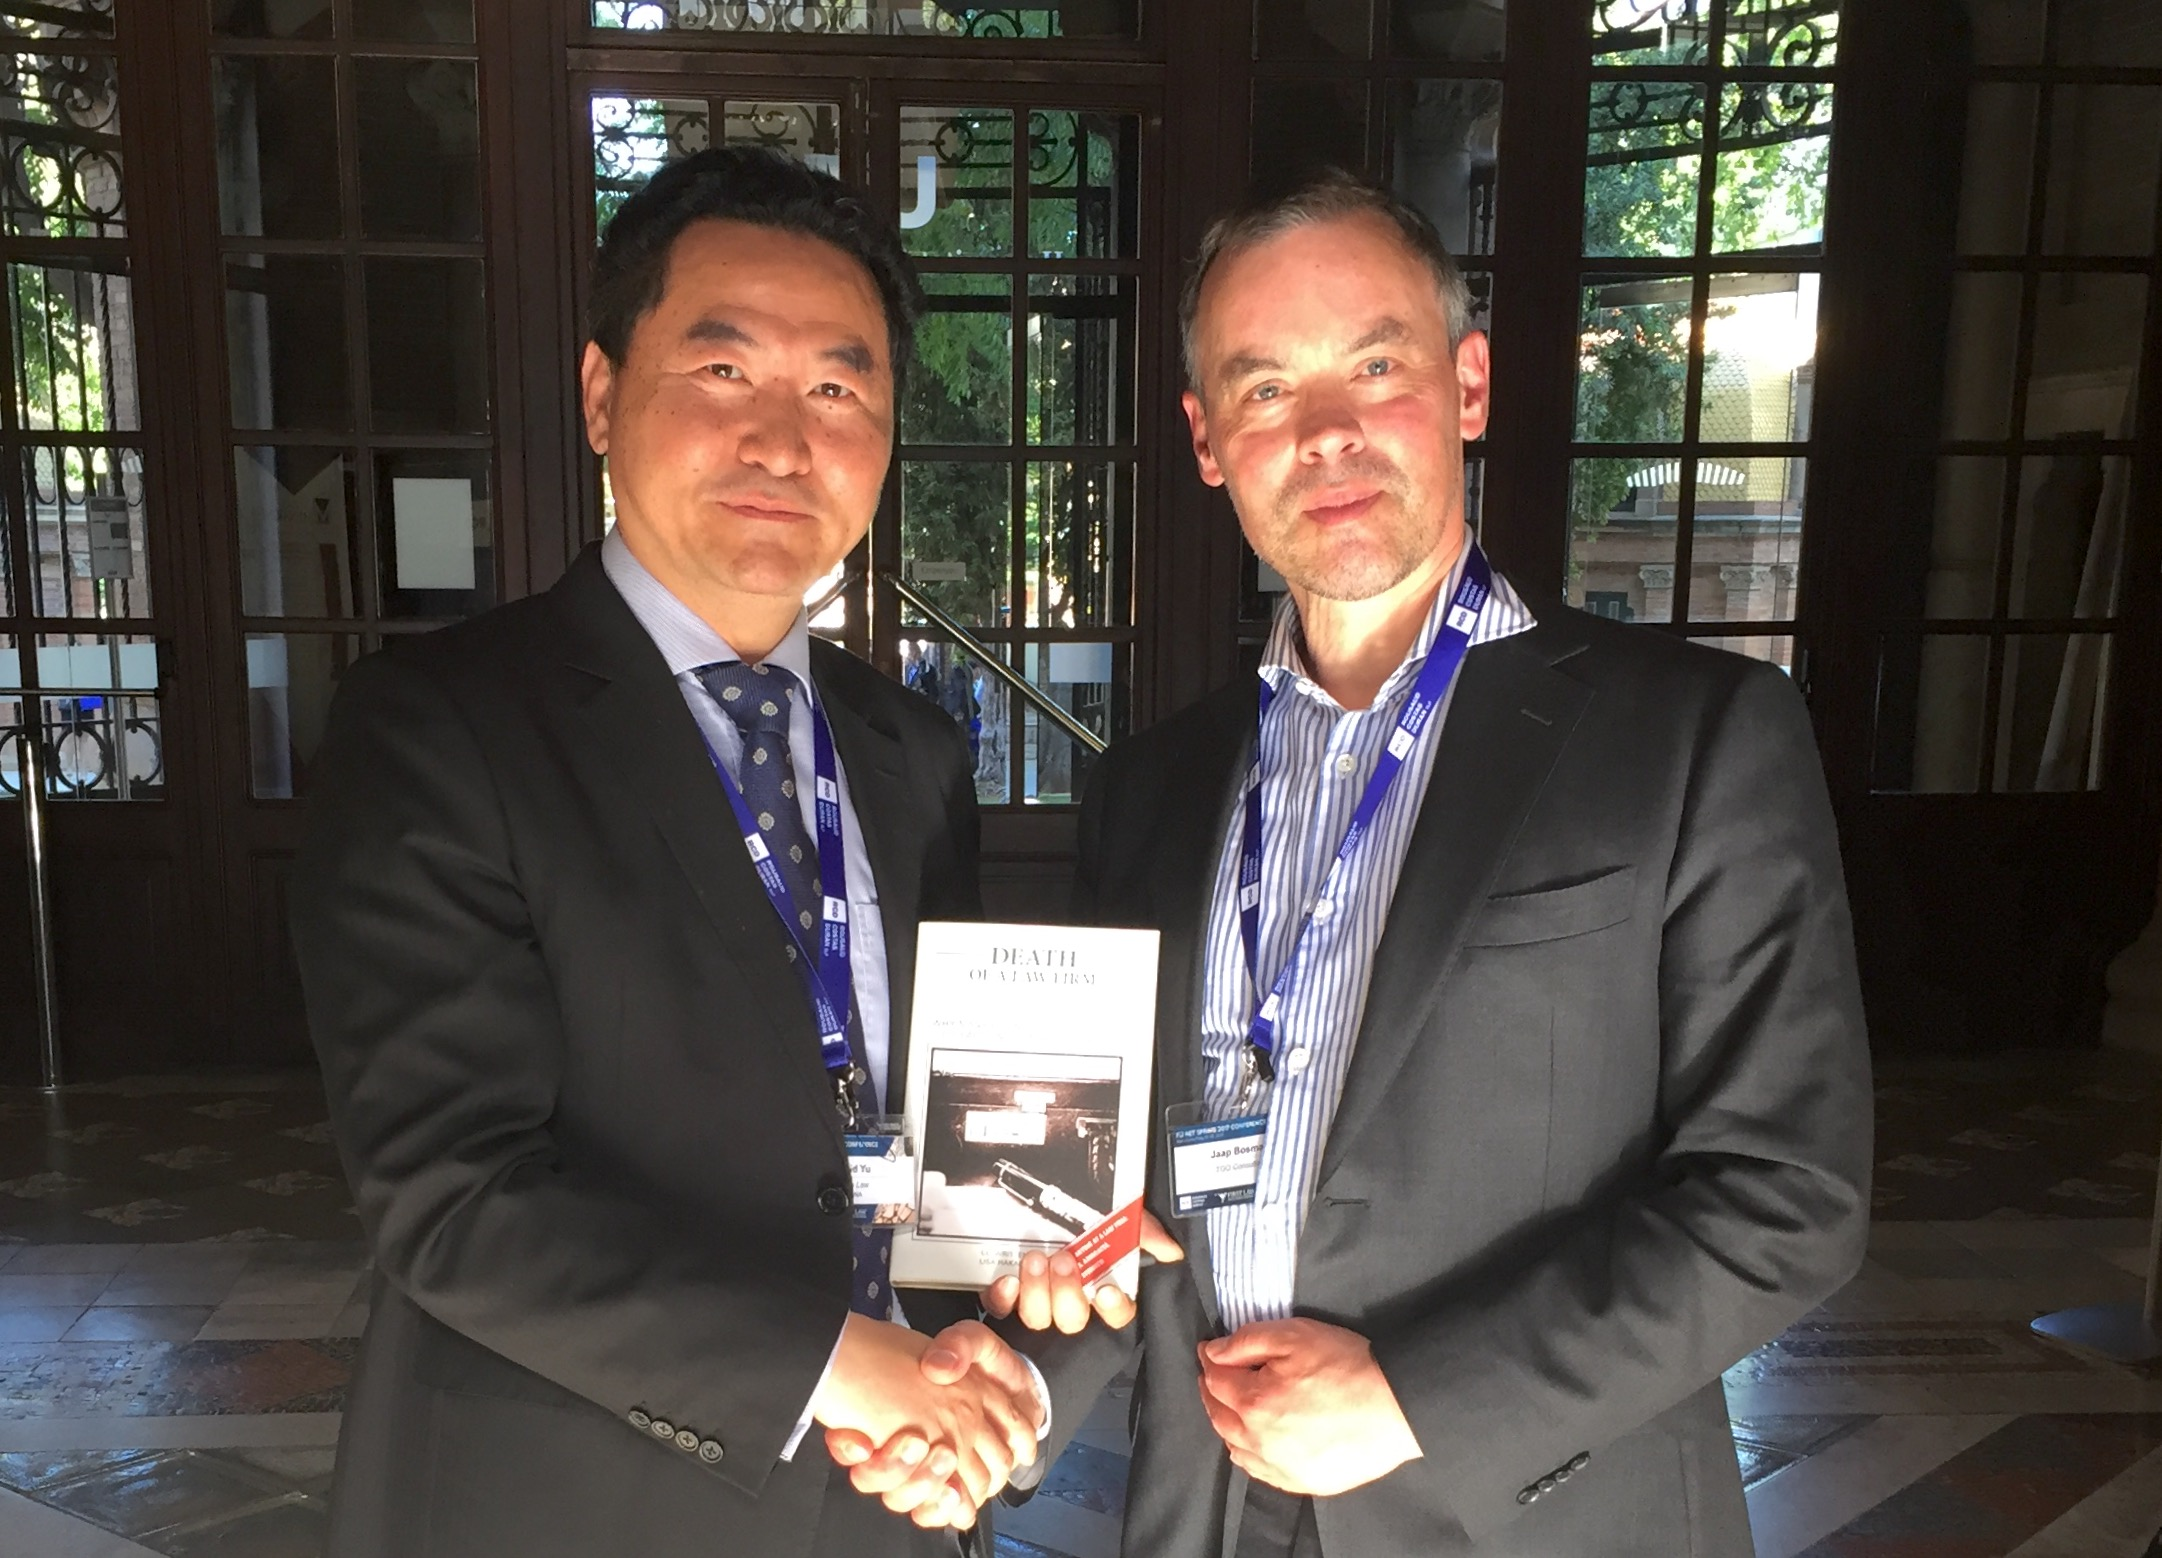 Jaap Bosman TGO Consulting with David Yu Shanghai Bar